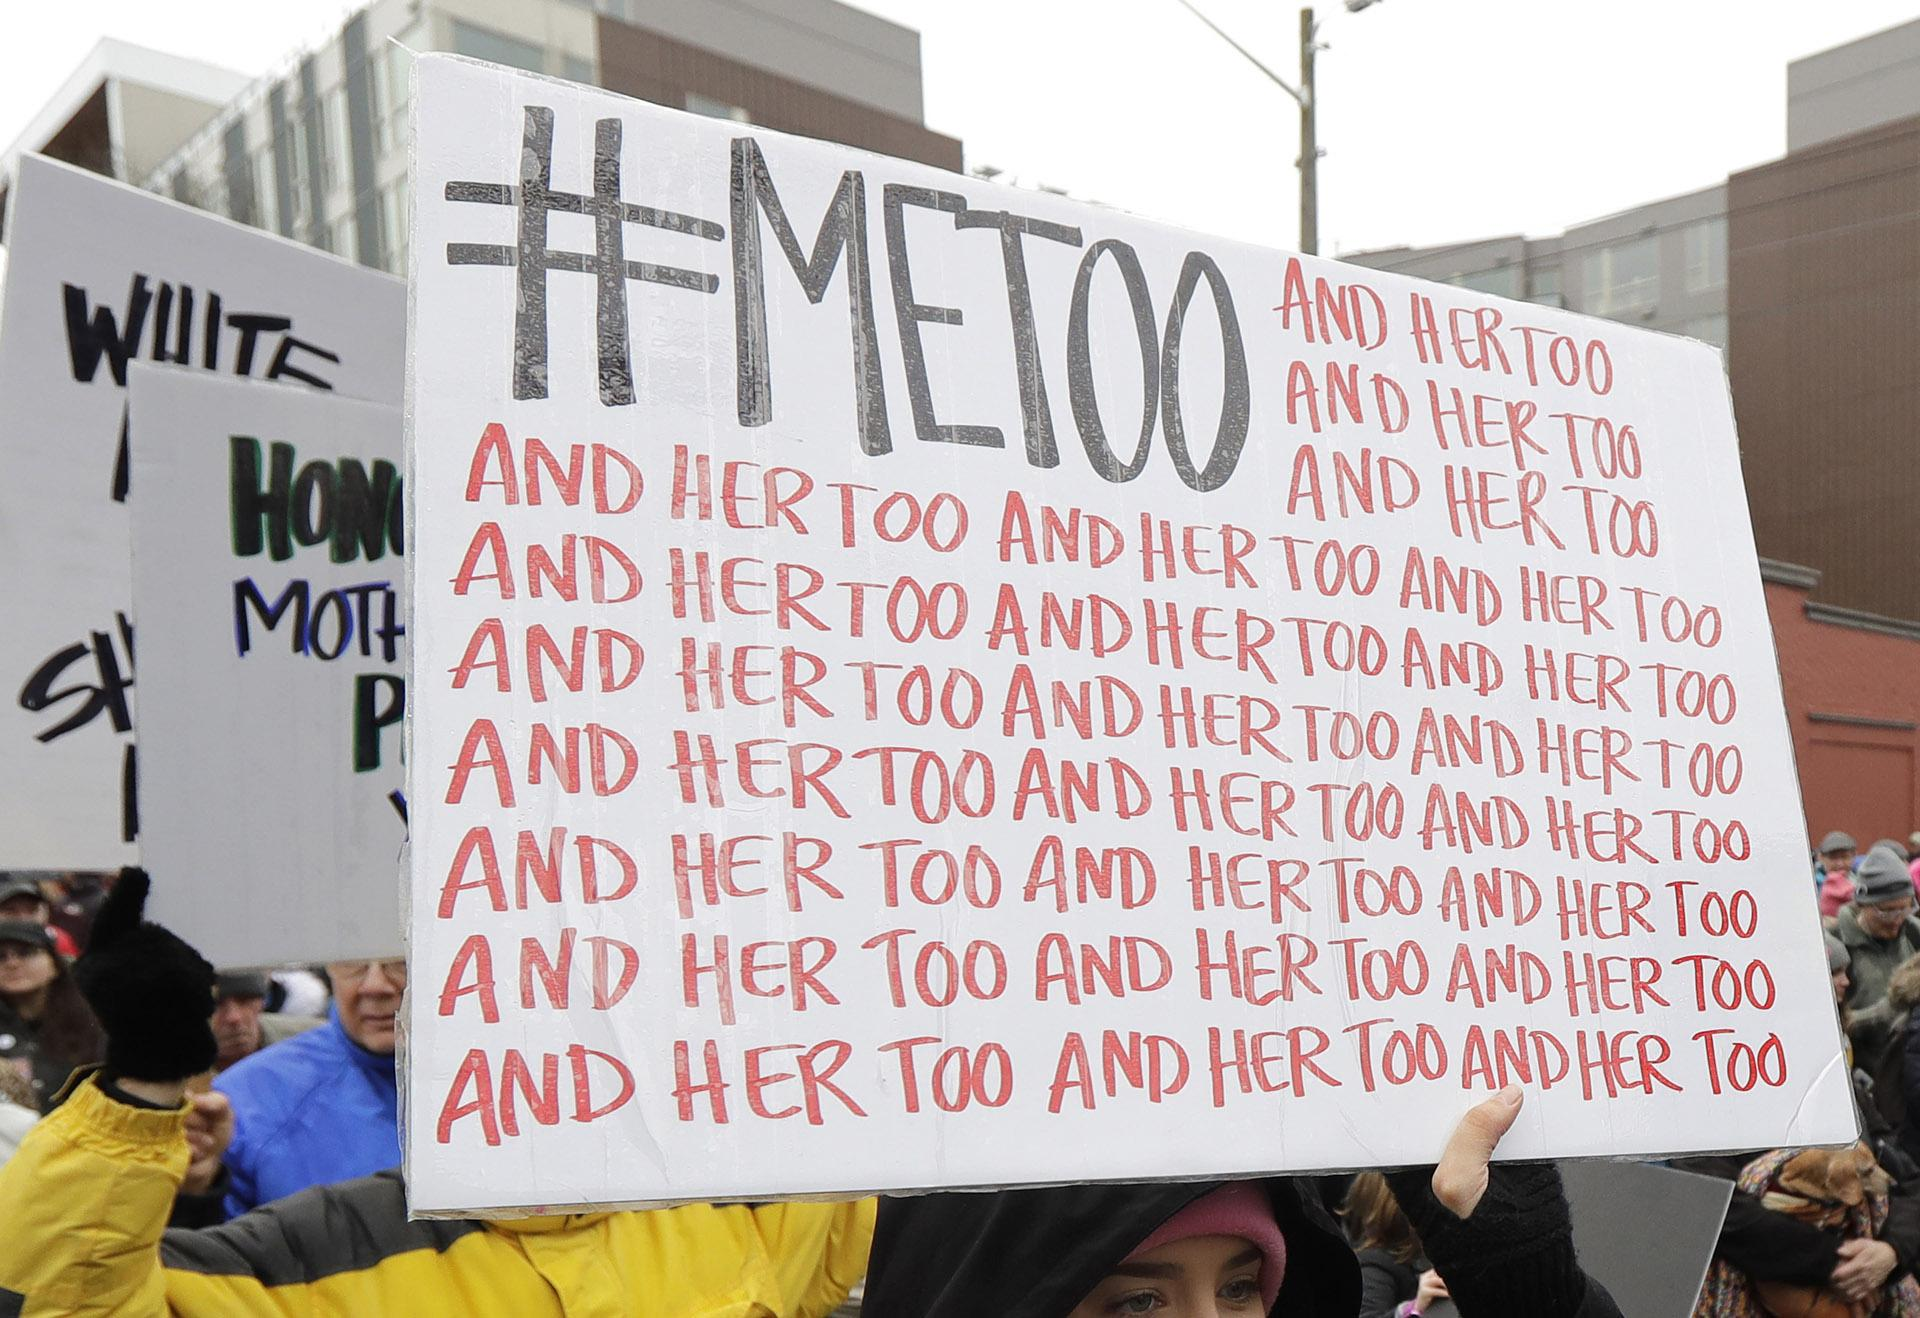 In this Jan. 20, 2018 file photo, a marcher carries a sign with the popular Twitter hashtag #MeToo used by people speaking out against sexual harassment as she takes part in a Women's March in Seattle.   (AP Photo / Ted S. Warren, File)